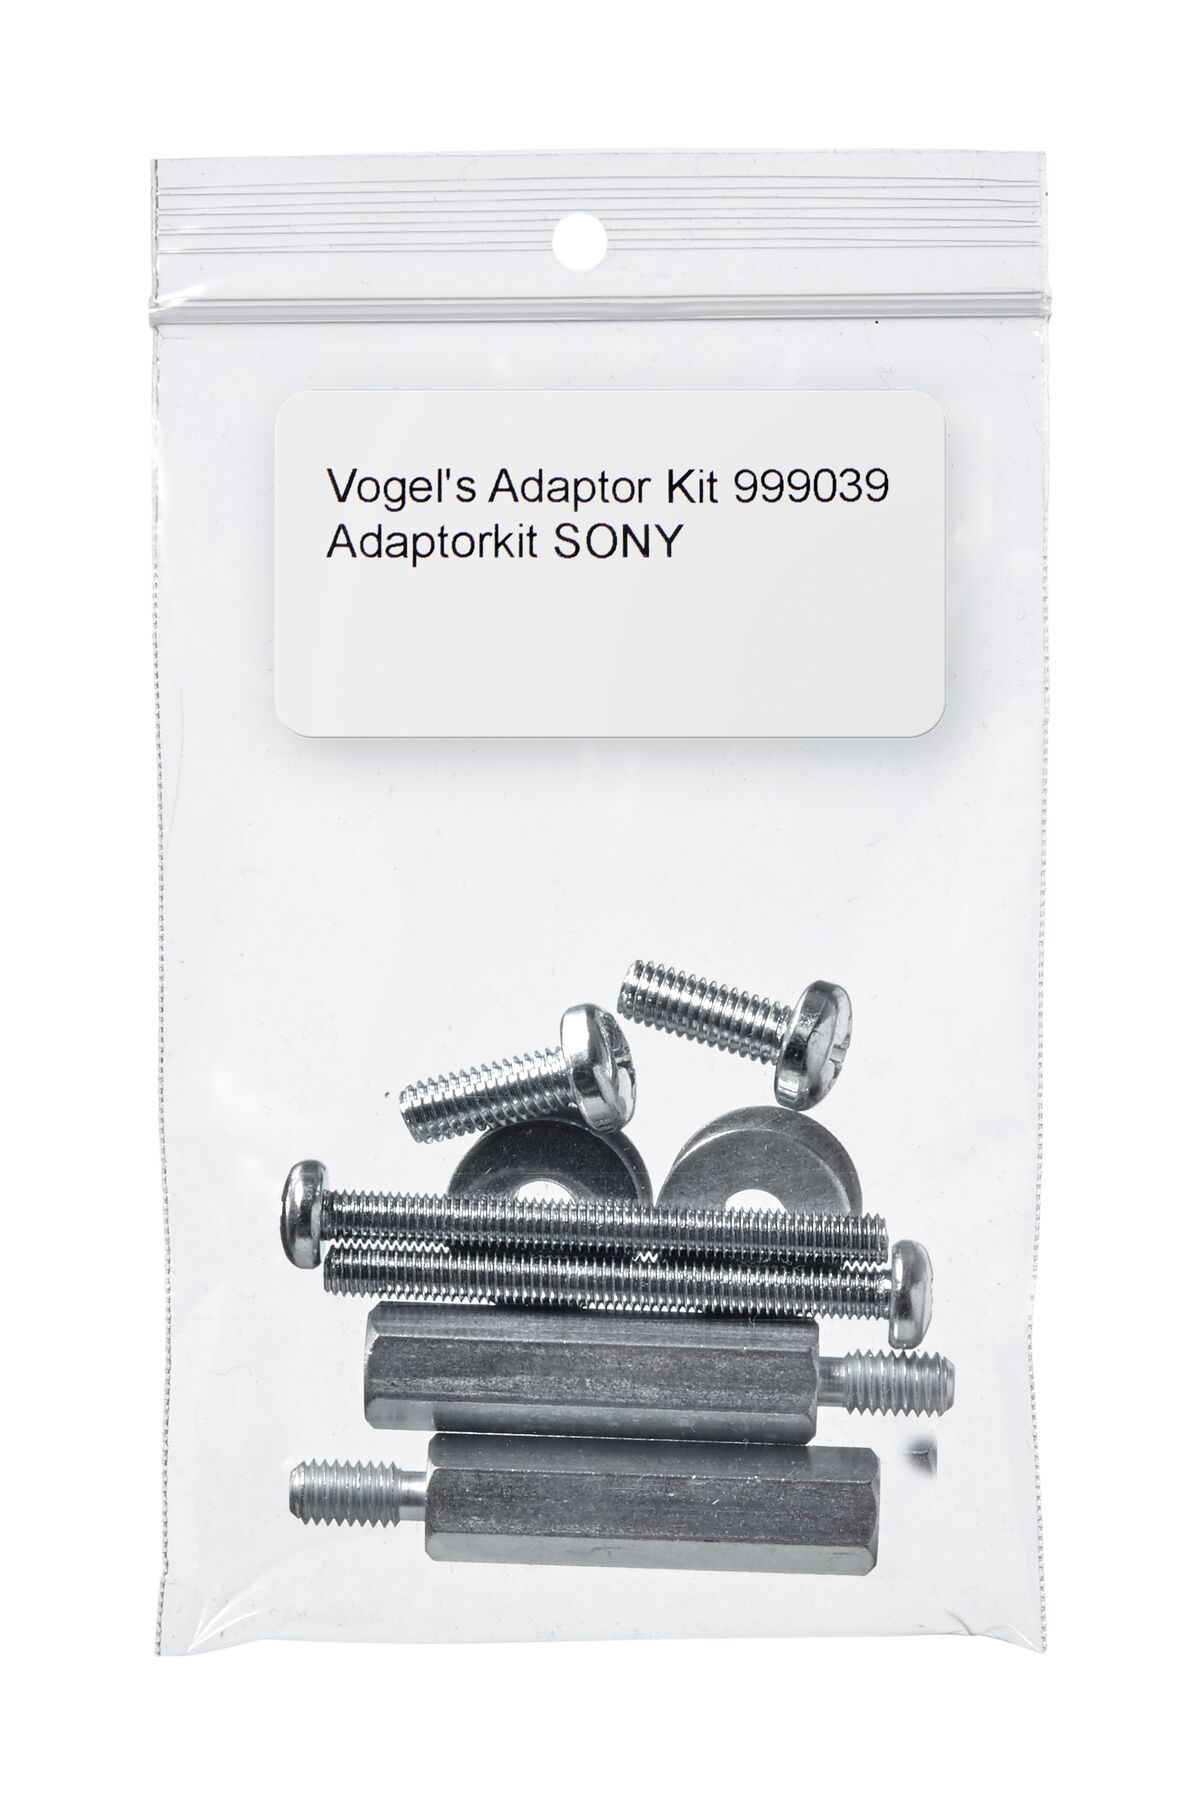 Vogel's Adaptor Kit - SONY - Product